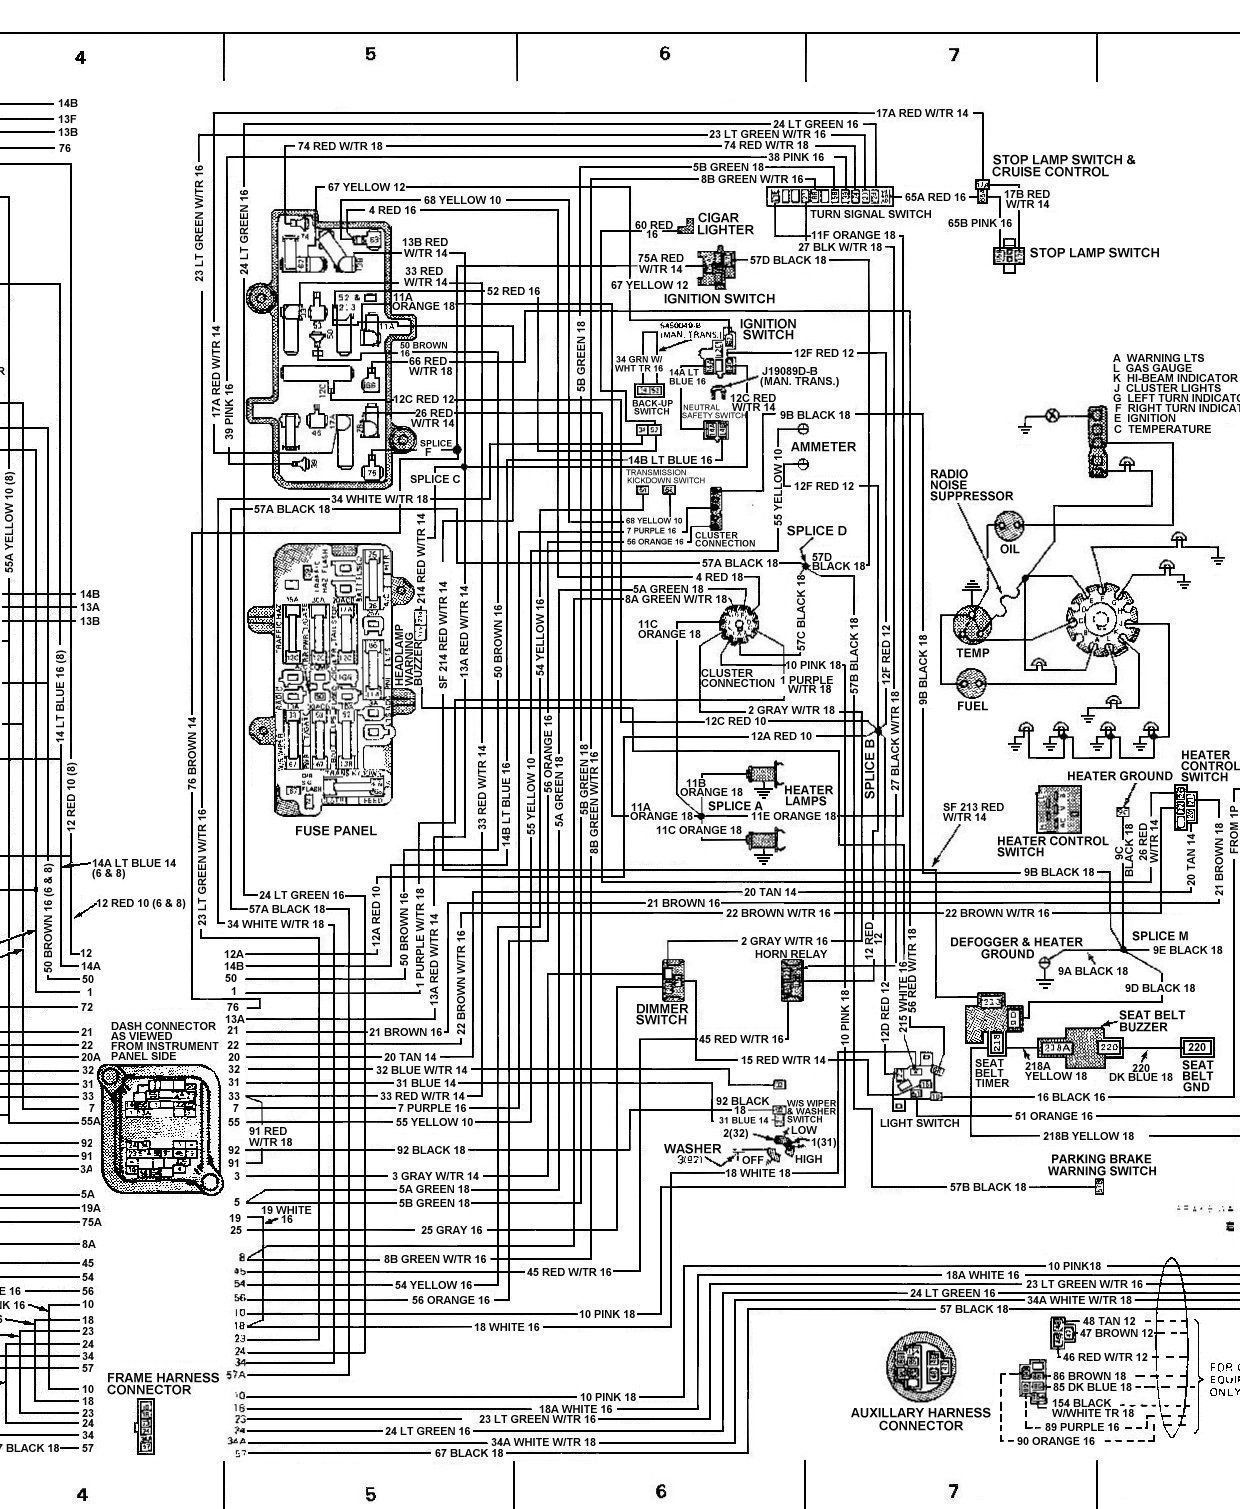 pontiac g6 wiring diagram schematics free download html with 232951 Ebooks Automotive Vw Jetta Wiring Diagram 2 8 1998 on 2005 Chrysler Pacifica Wiring Diagram further 2006 Pontiac G6 Wiring Diagram in addition 2006 Gto Stereo Wiring Harness as well 03 Pontiac Montana Wiring Diagram further Dometic Rm2852 Rv Refrigerator Wiring Diagrams For.